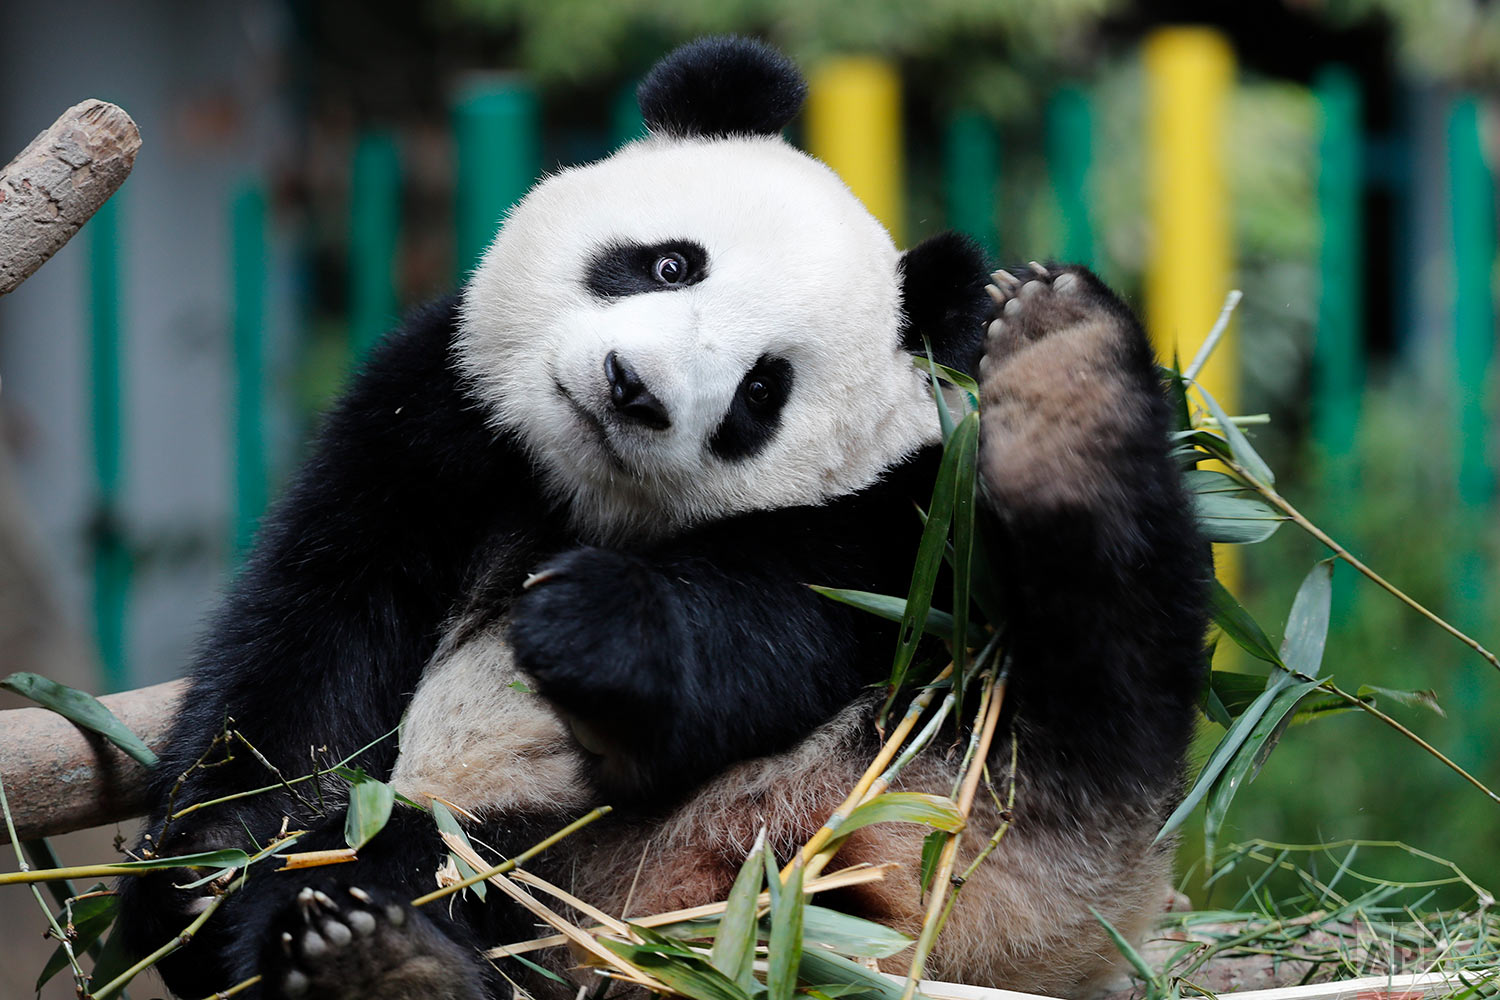 Two years old female giant panda cub Nuan Nuan, scratch her head at the Giant Panda Conservation Center in Kuala Lumpur, Malaysia, Thursday, Oct. 5, 2017. The cub, the offspring of Xing Xing and Liang Liang, two giant pandas on loan to Malaysia from China in 2014, will return to China on Nov. 14. (AP Photo/Vincent Thian)